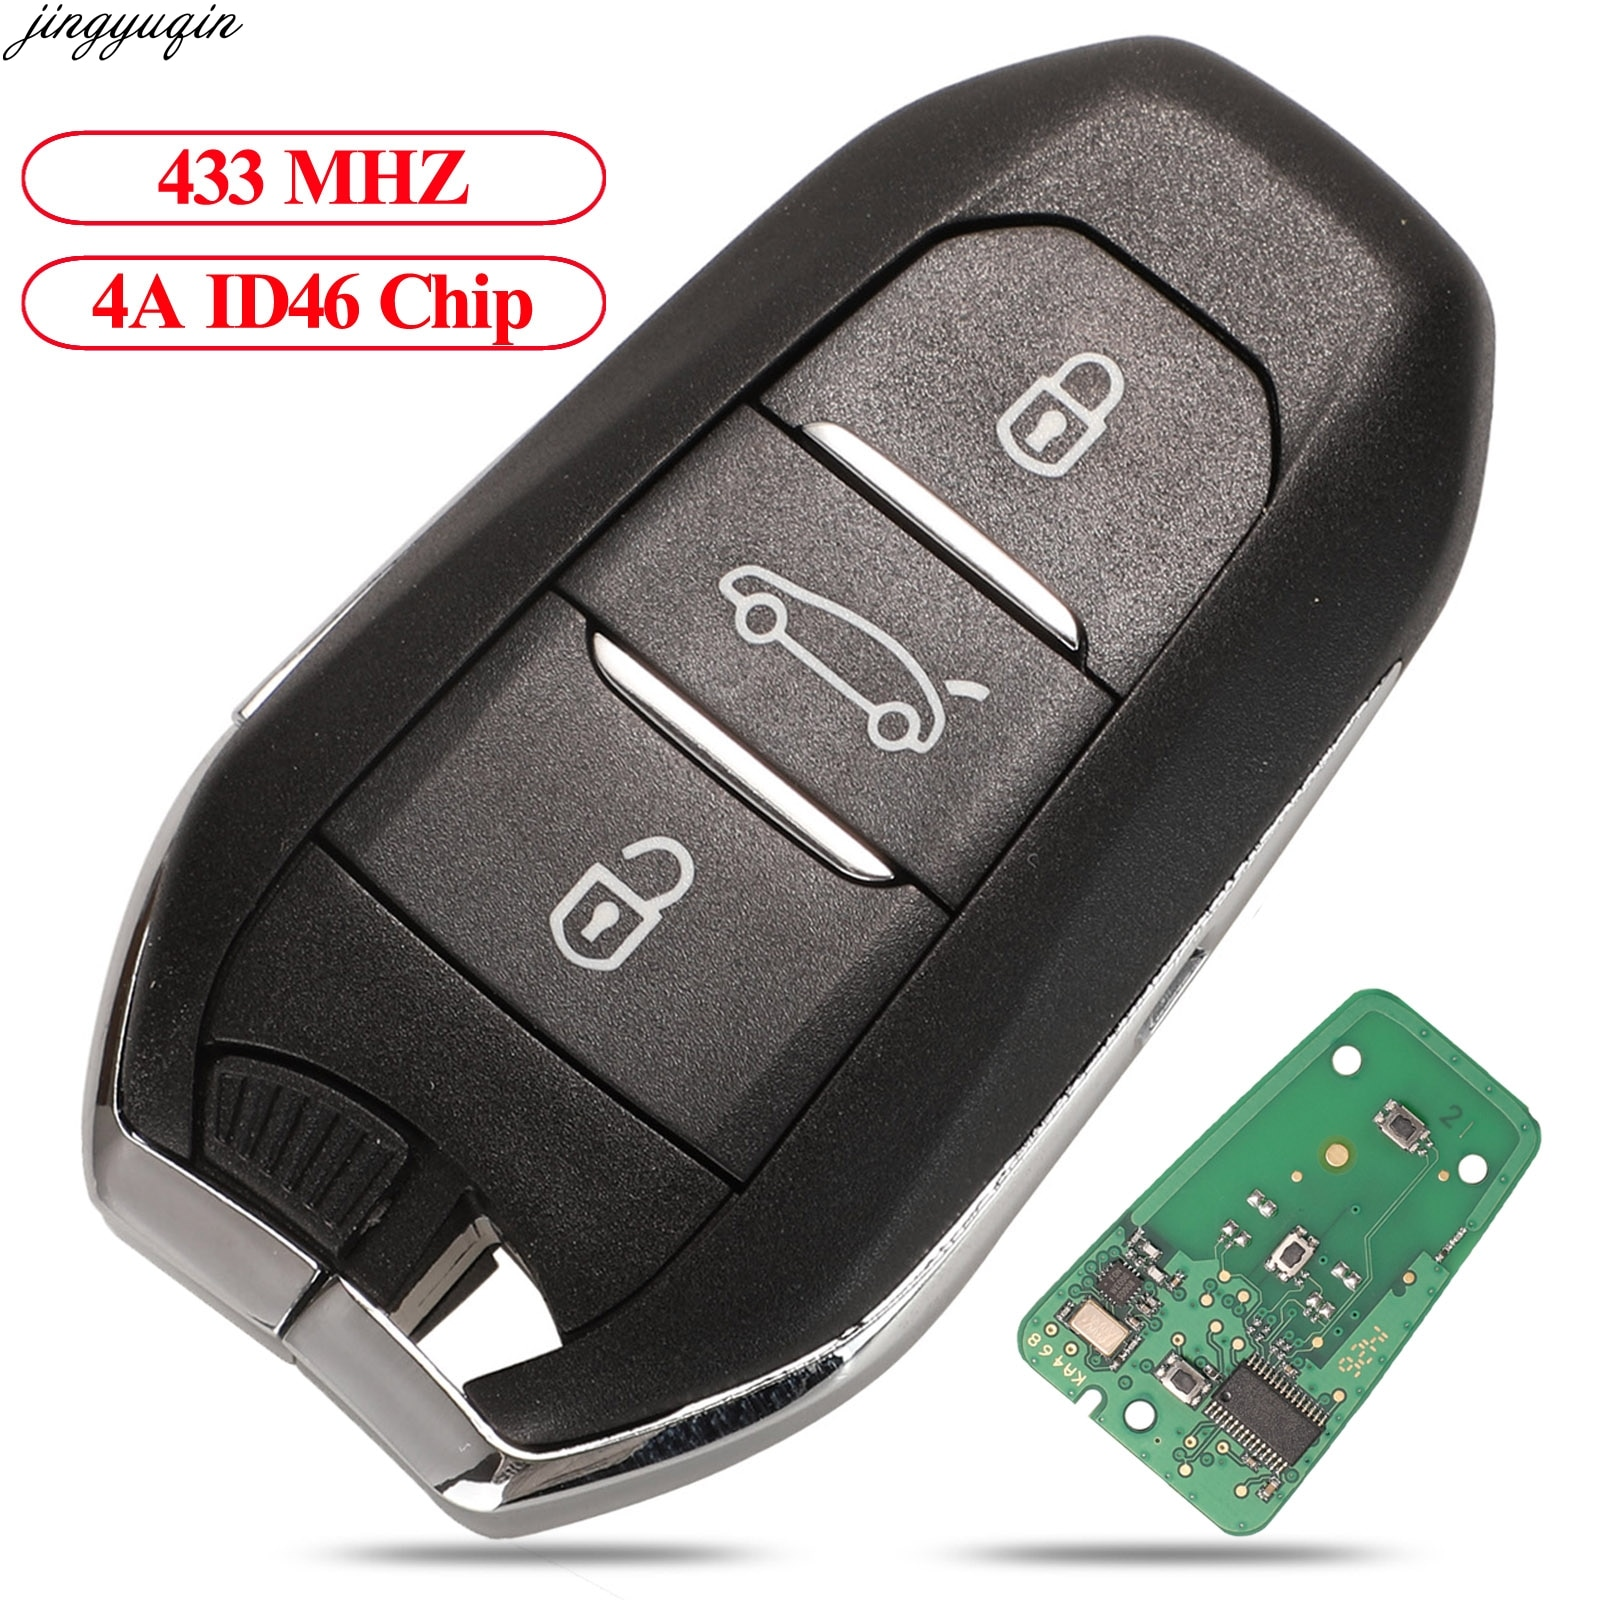 soft tpu car remote key case cover shell for peugeot 308 408 508 2008 3008 4008 5008 citroen c4 c4l c6 c3 xr picasso ds3 ds4 ds5 Jingyuqin Remote Keyless-Go Car Key 433MHz 4A ID46 PCF7945 Chip For Citroen C4 C4L DS4 DS5 Peugeot 308 408 508 5008 3B HU83/VA2